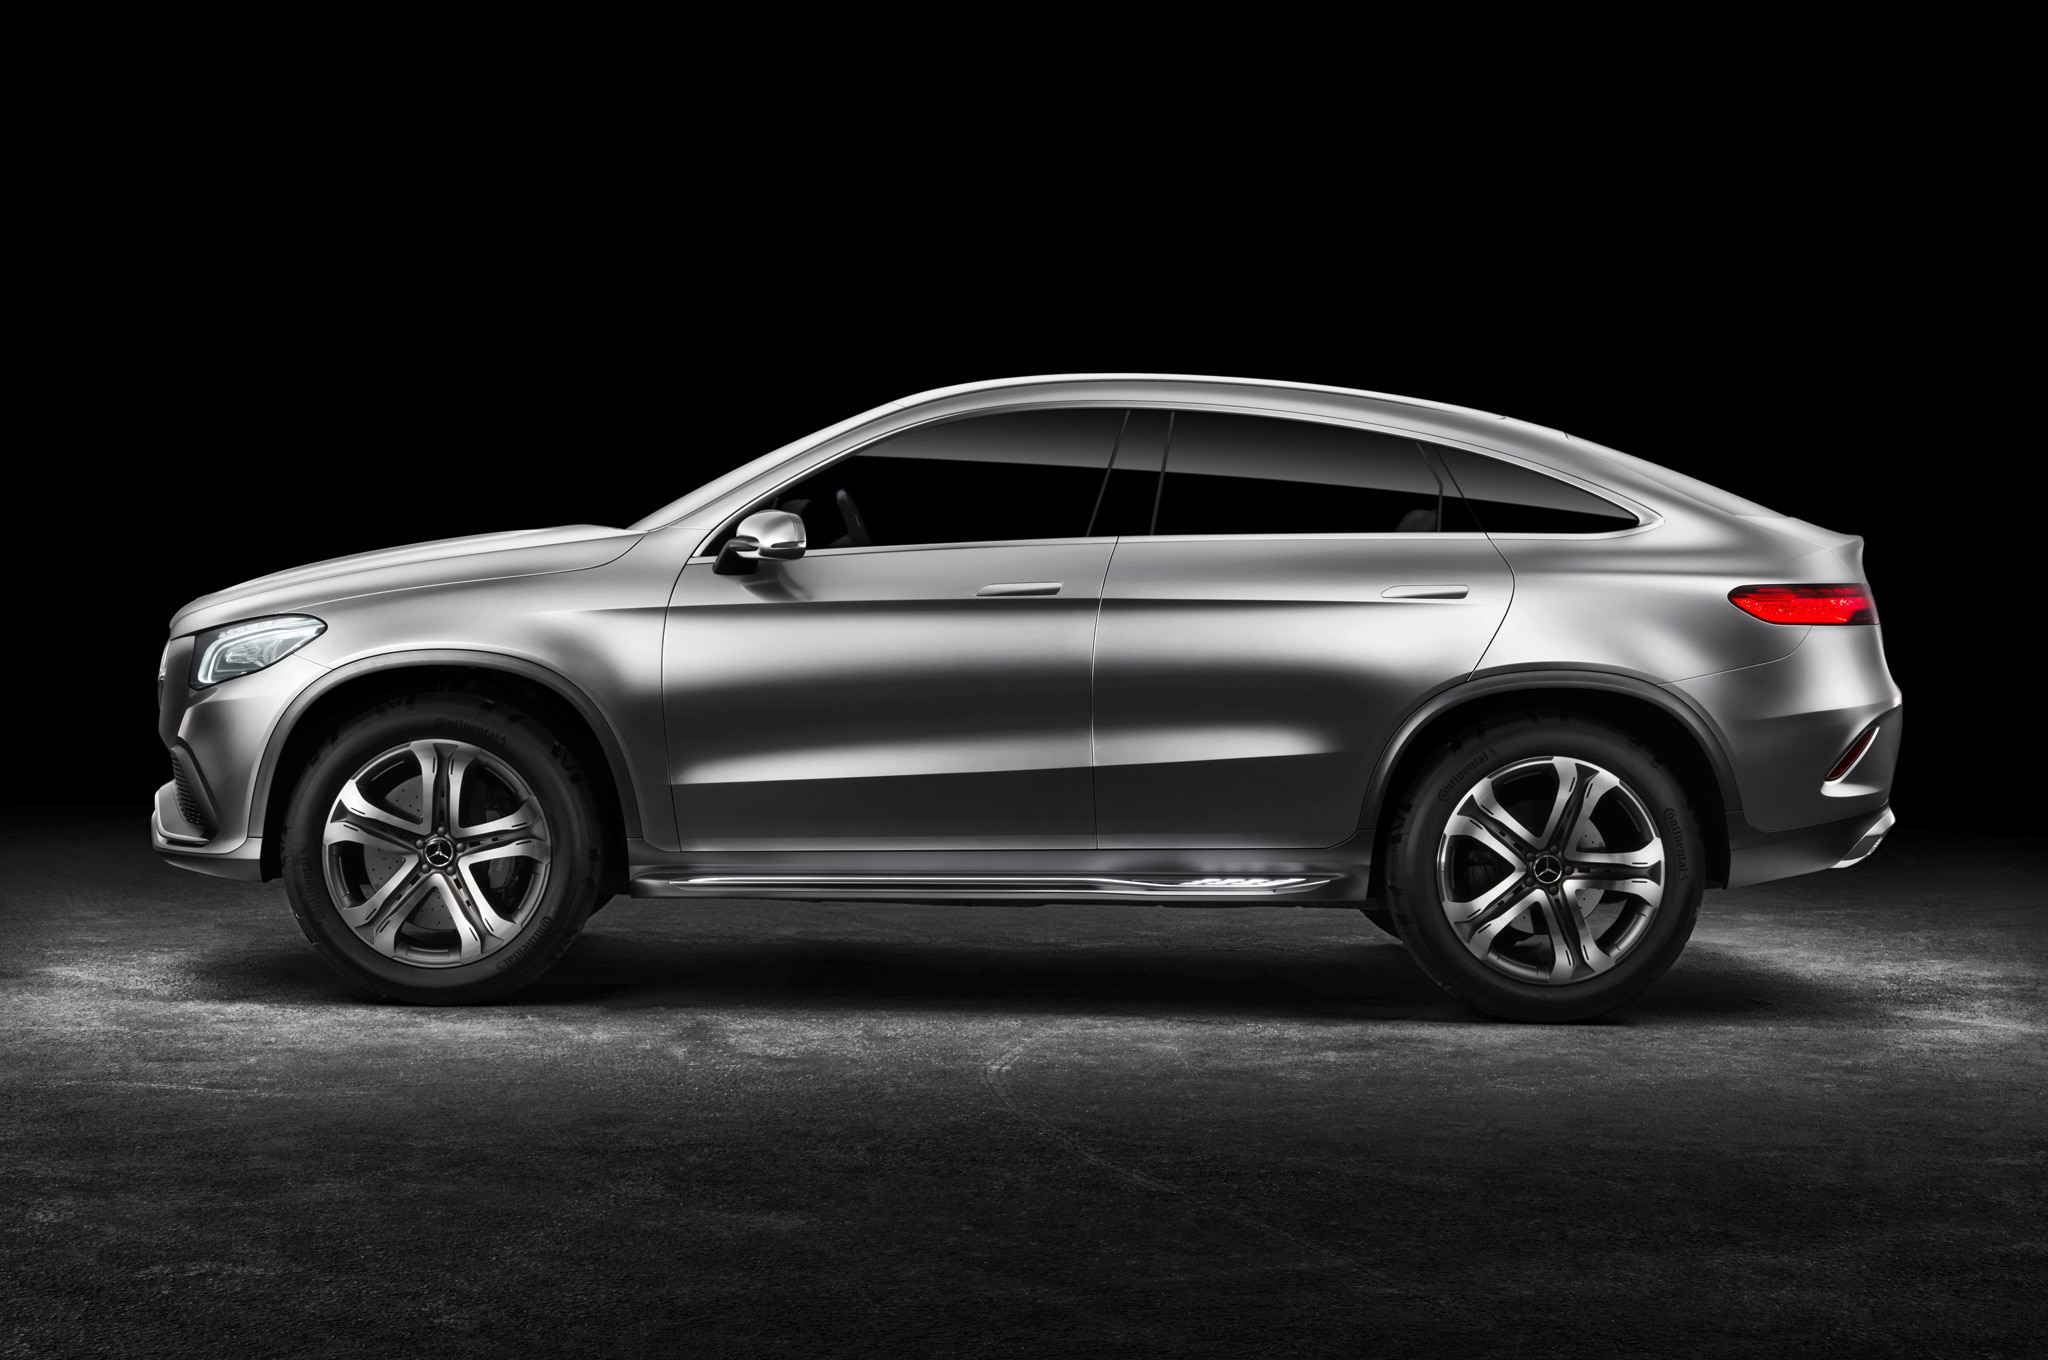 Mercedes benz concept coupe suv revealed in beijing for Mercede benz suv